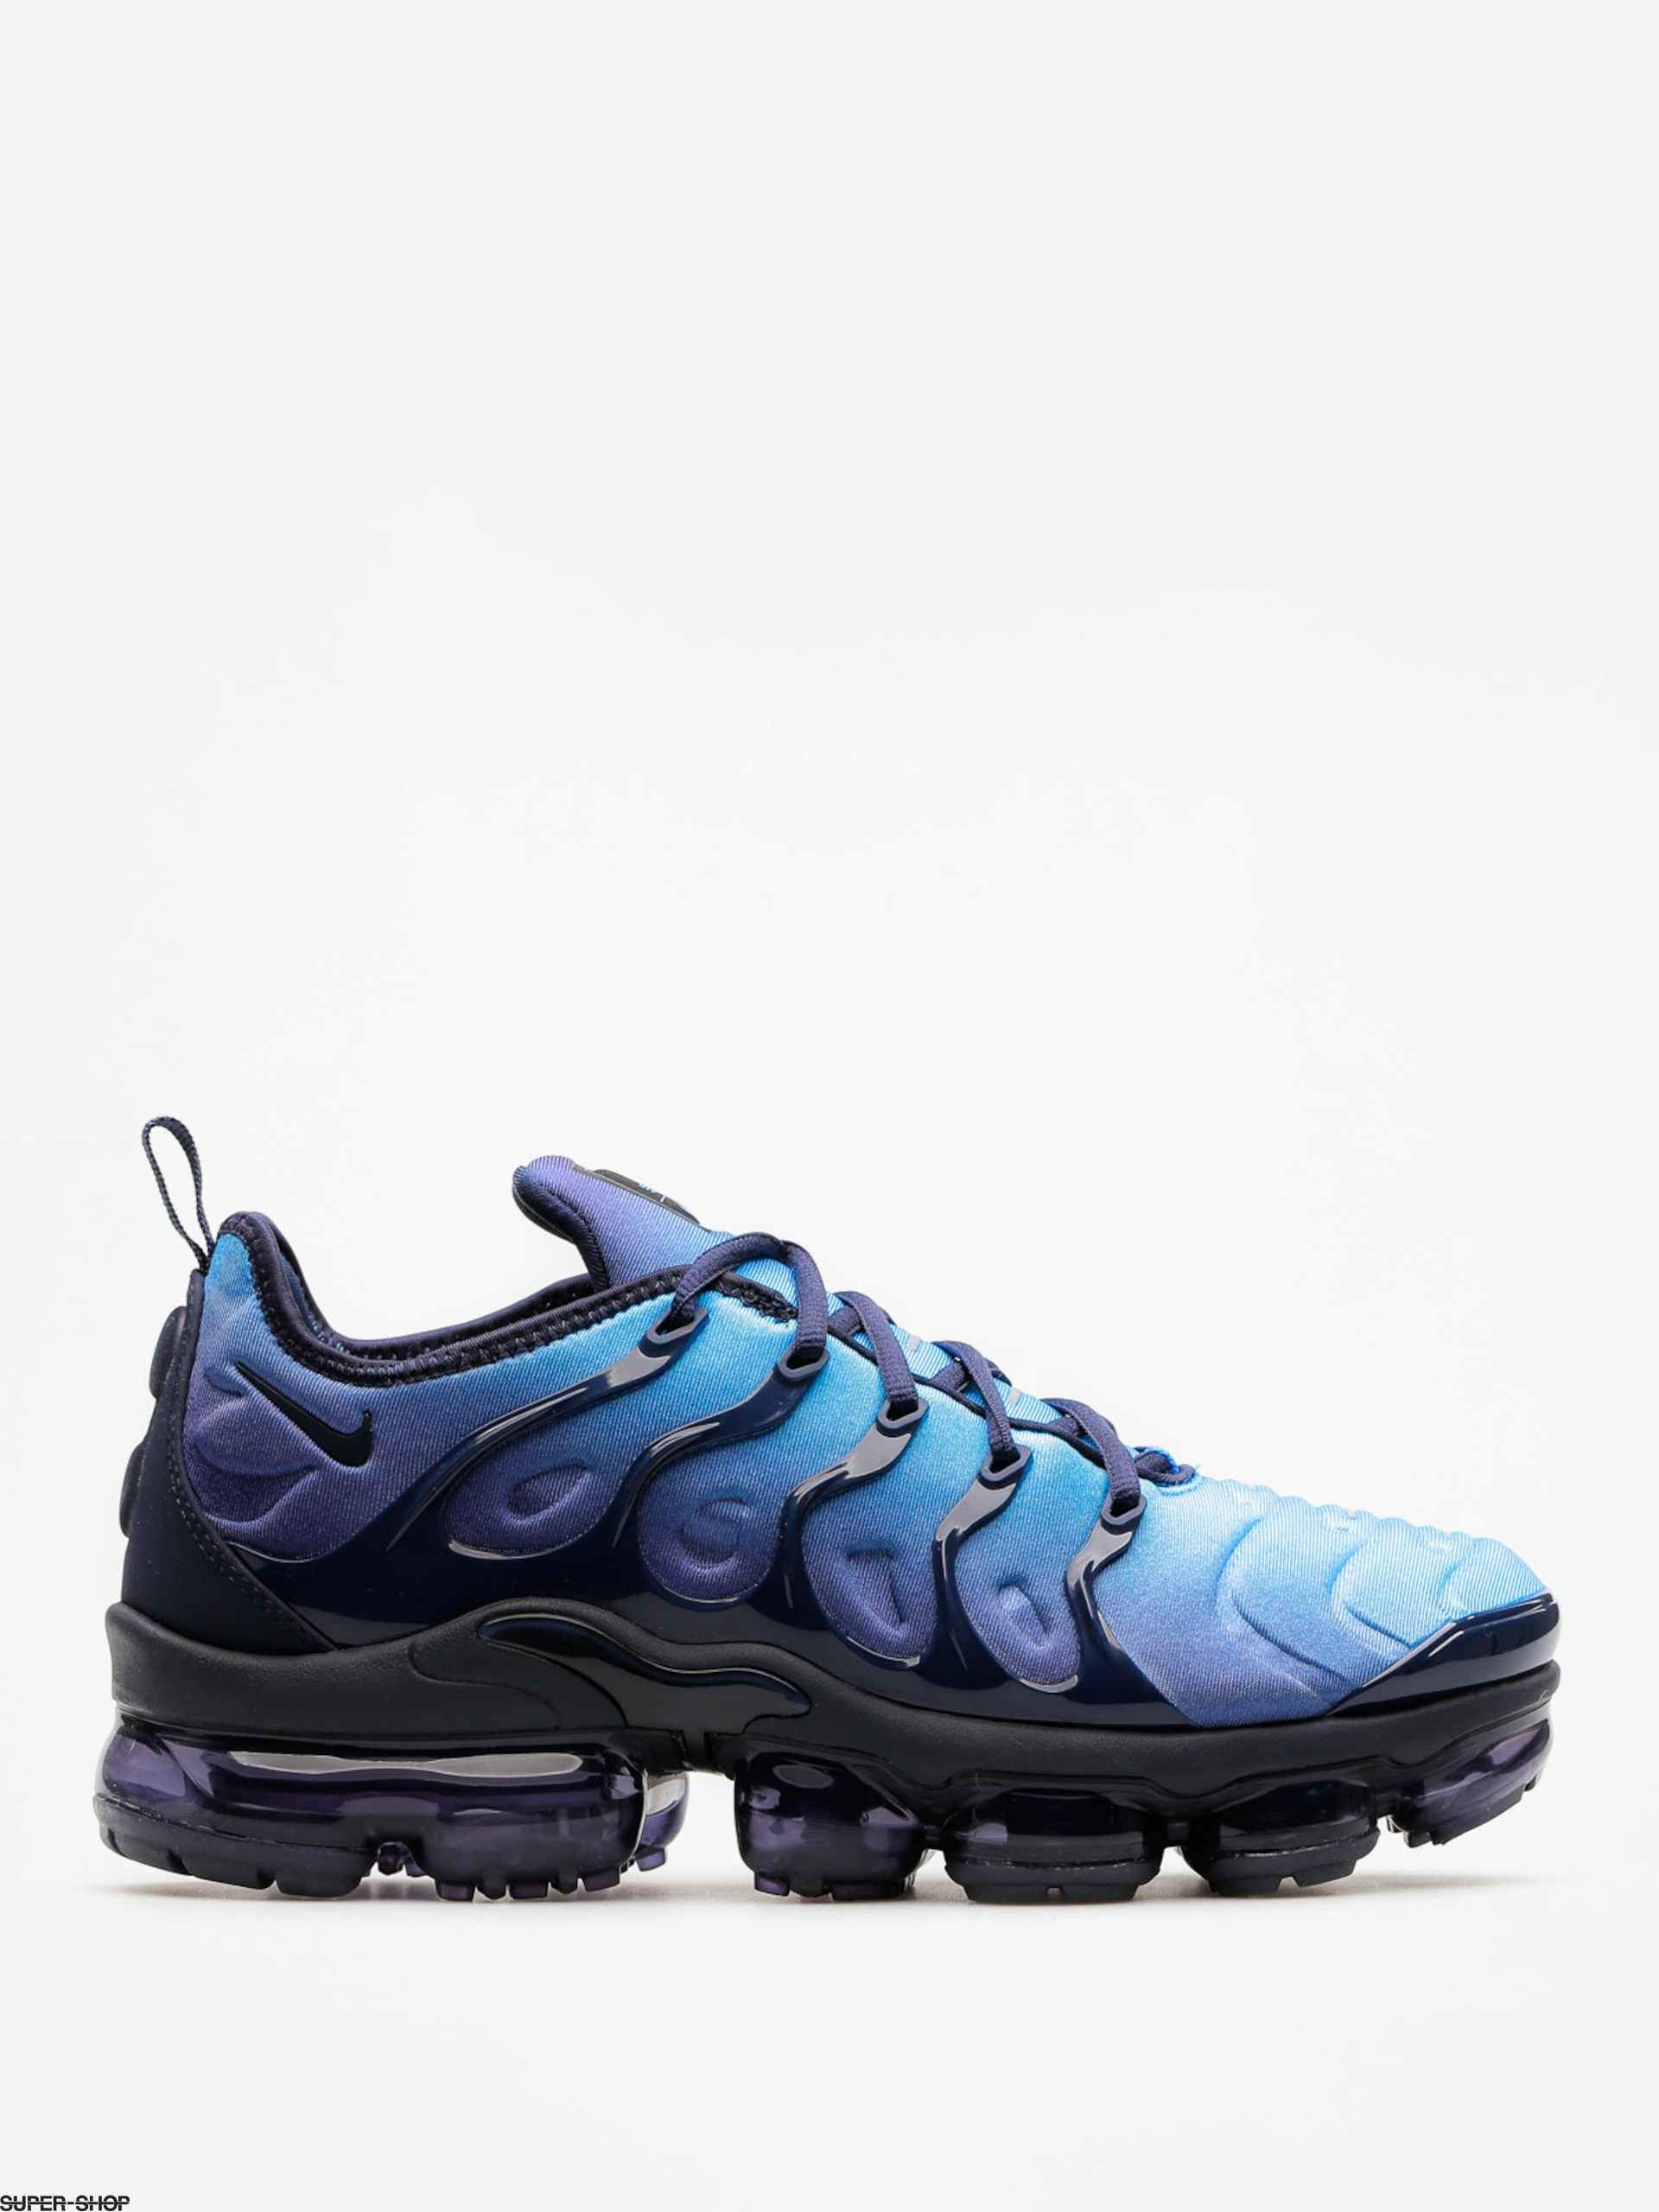 Nike Shoes Air Vapormax Plus (obsidian/obsidian photo blue black)